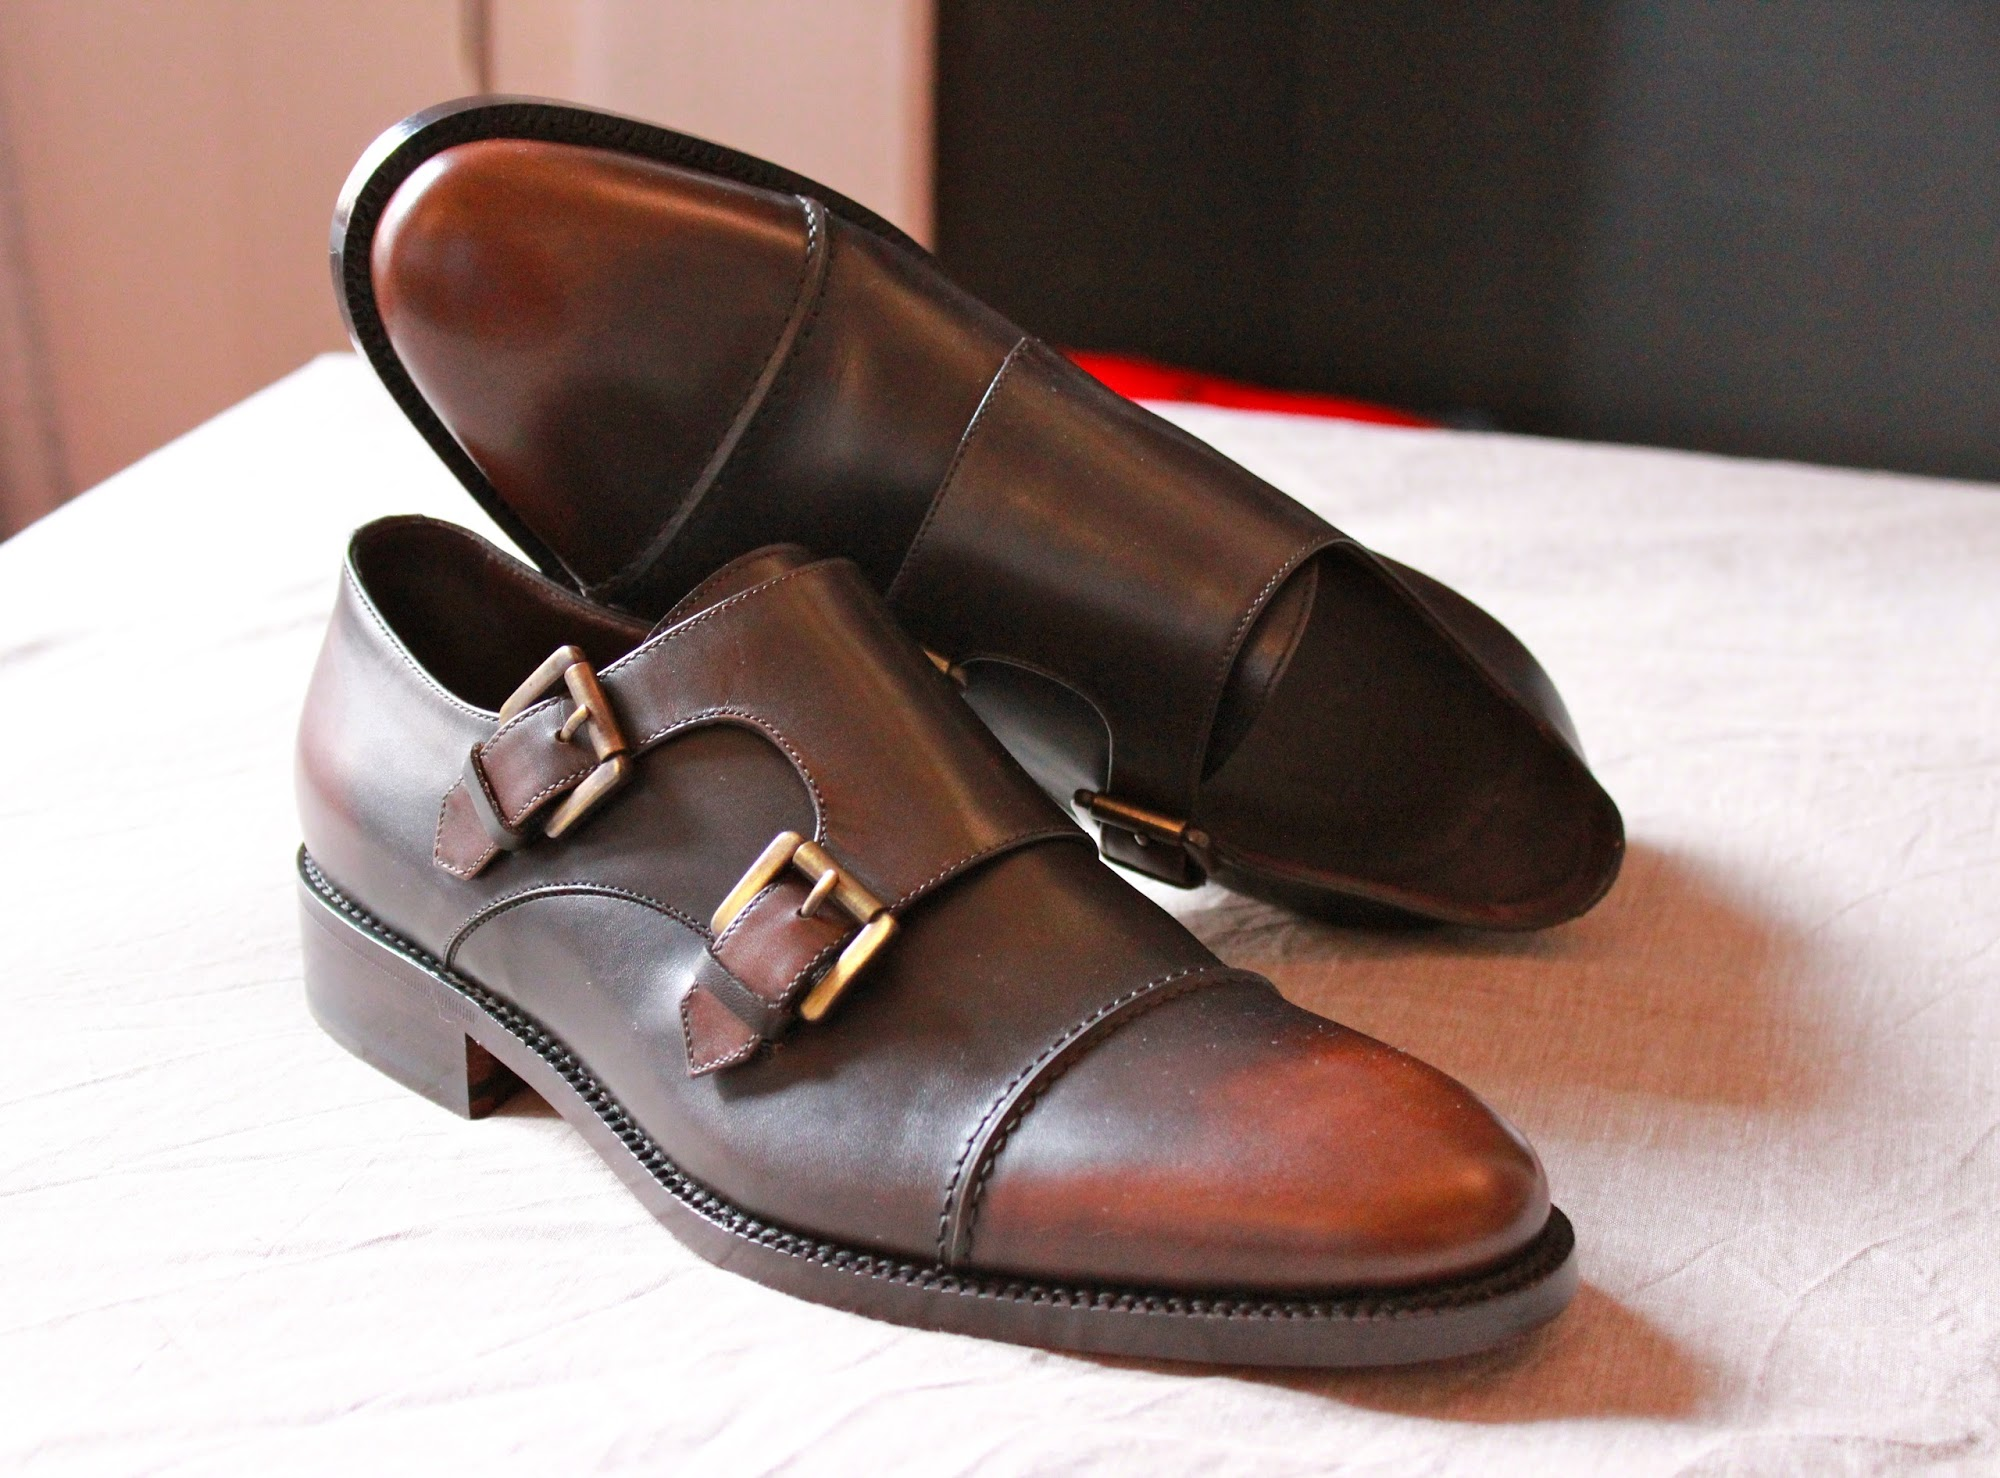 New arrivals: Gordon Bark Double Monks by 59BondSt